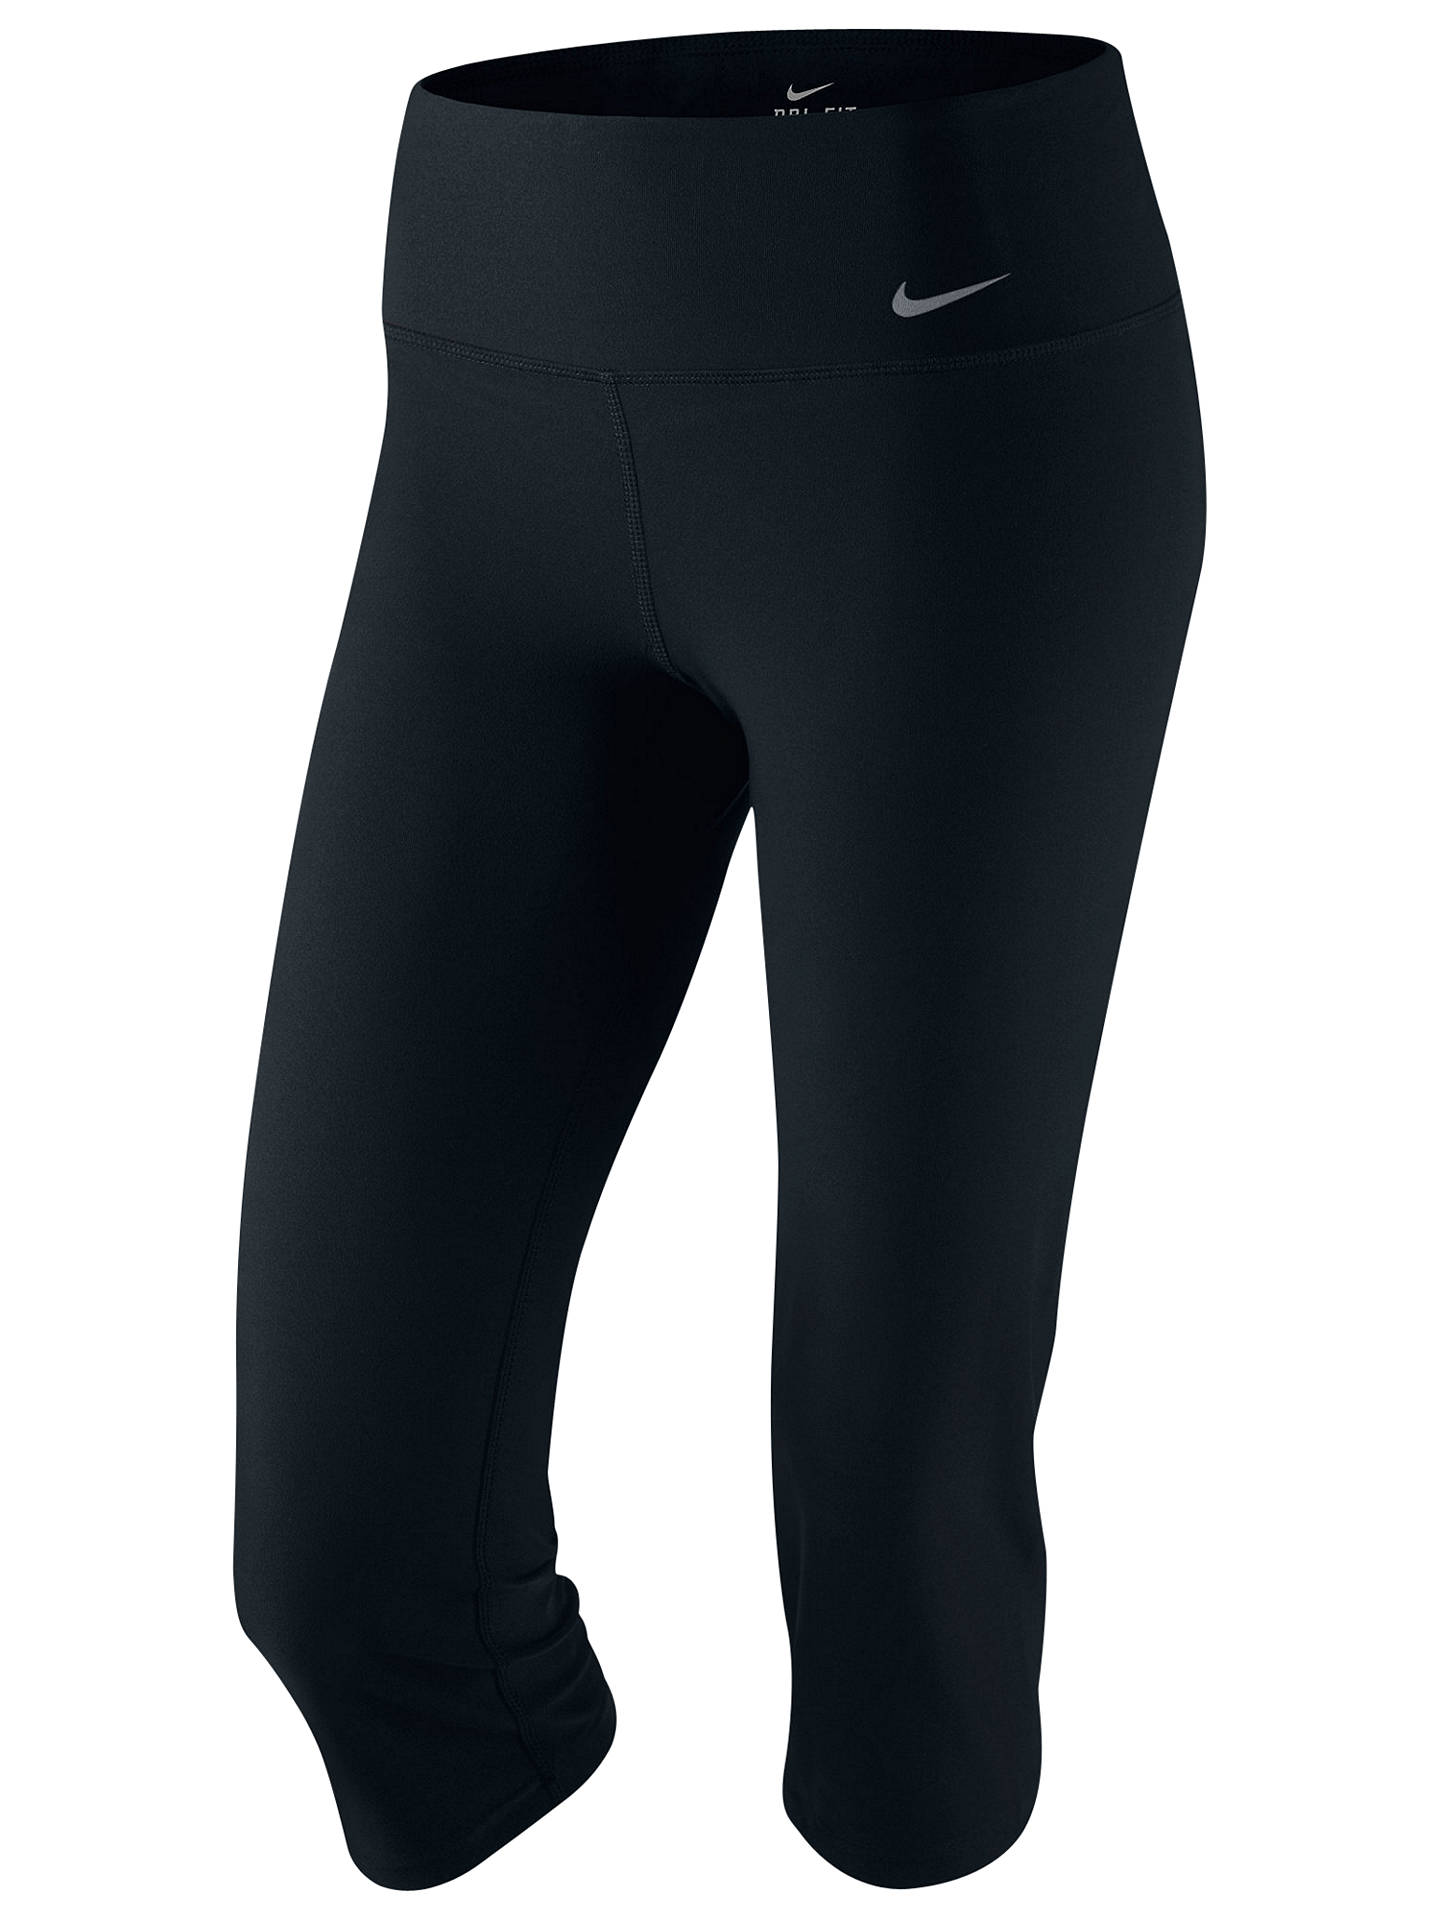 Buy Nike Legend Slim Capri Tights, Black, S Online at johnlewis.com